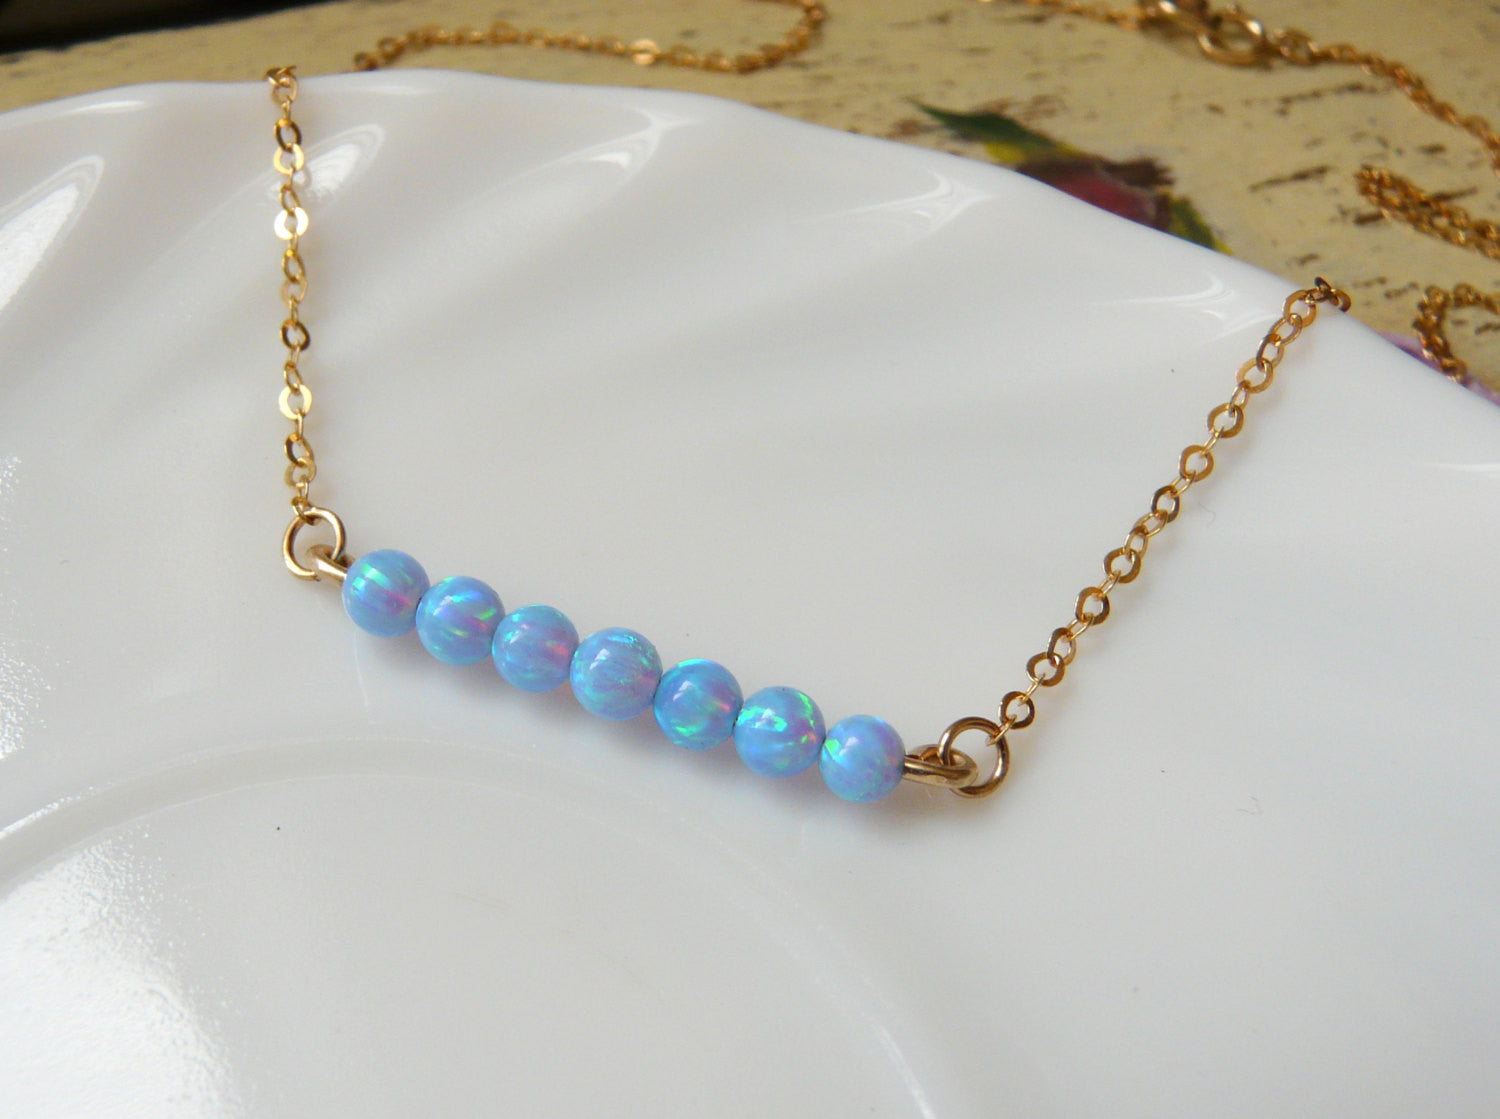 Opal bar necklace - OpaLandJewelry